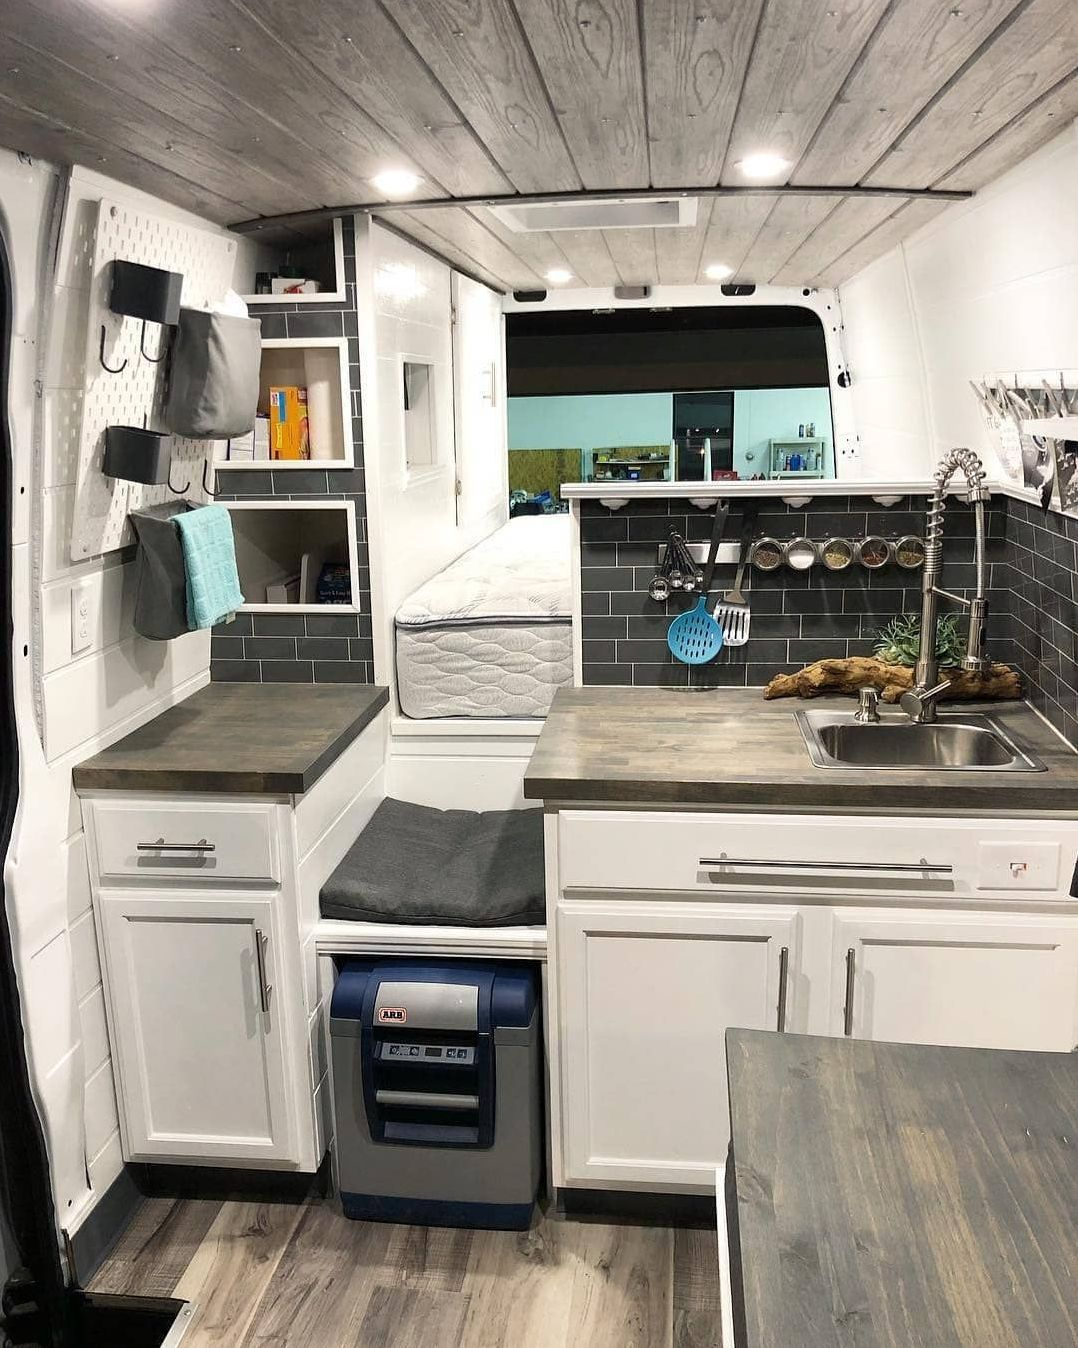 15 Custom Sprinter Van Conversion